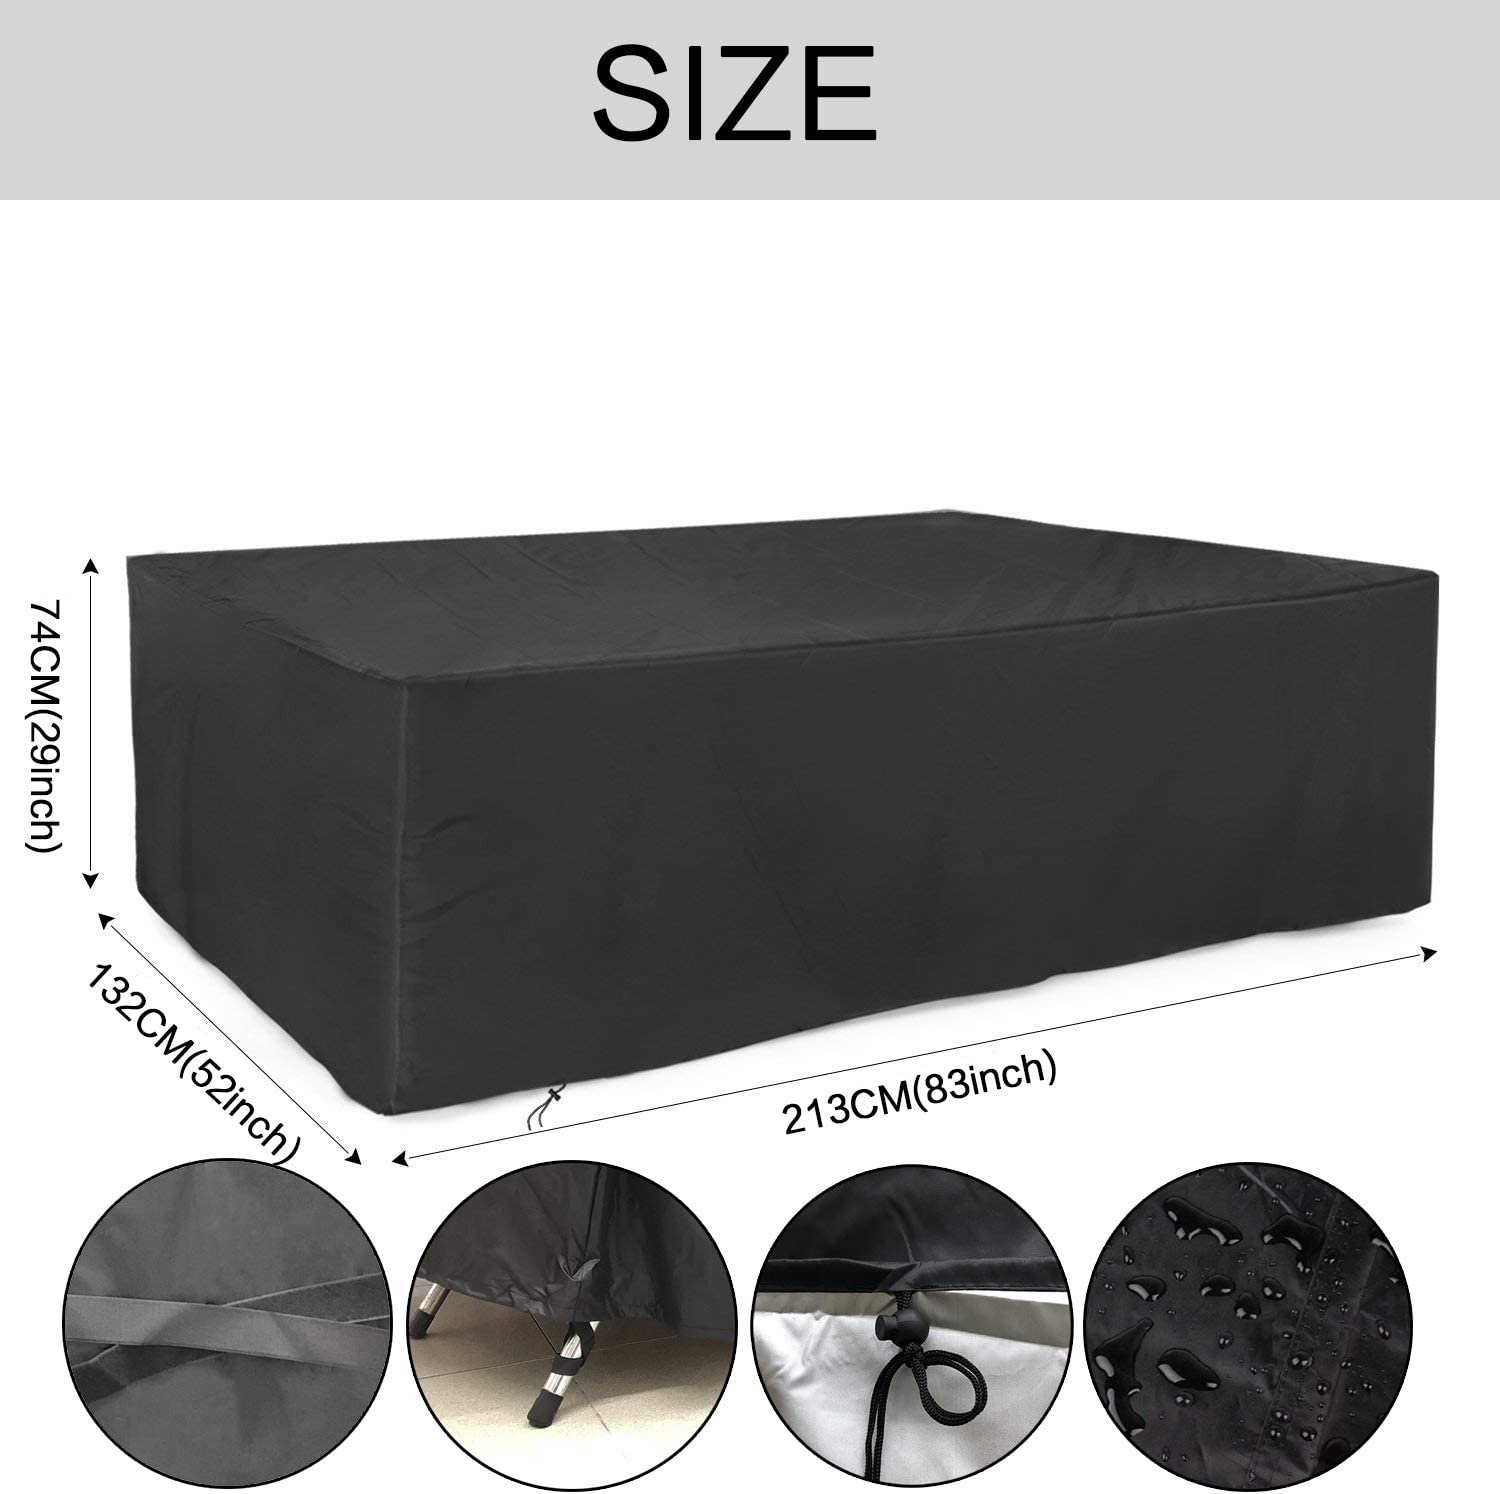 SARCCH Patio Furniture Cover, Outdoor Sectional Furniture Set Covers, Table Chair Sofa Covers, Durable and Convenient, Waterproof Snow Dust Wind Proof,Anti-UV Fits to 6-8 Seat (83''x52''x29'') : Garden & Outdoor